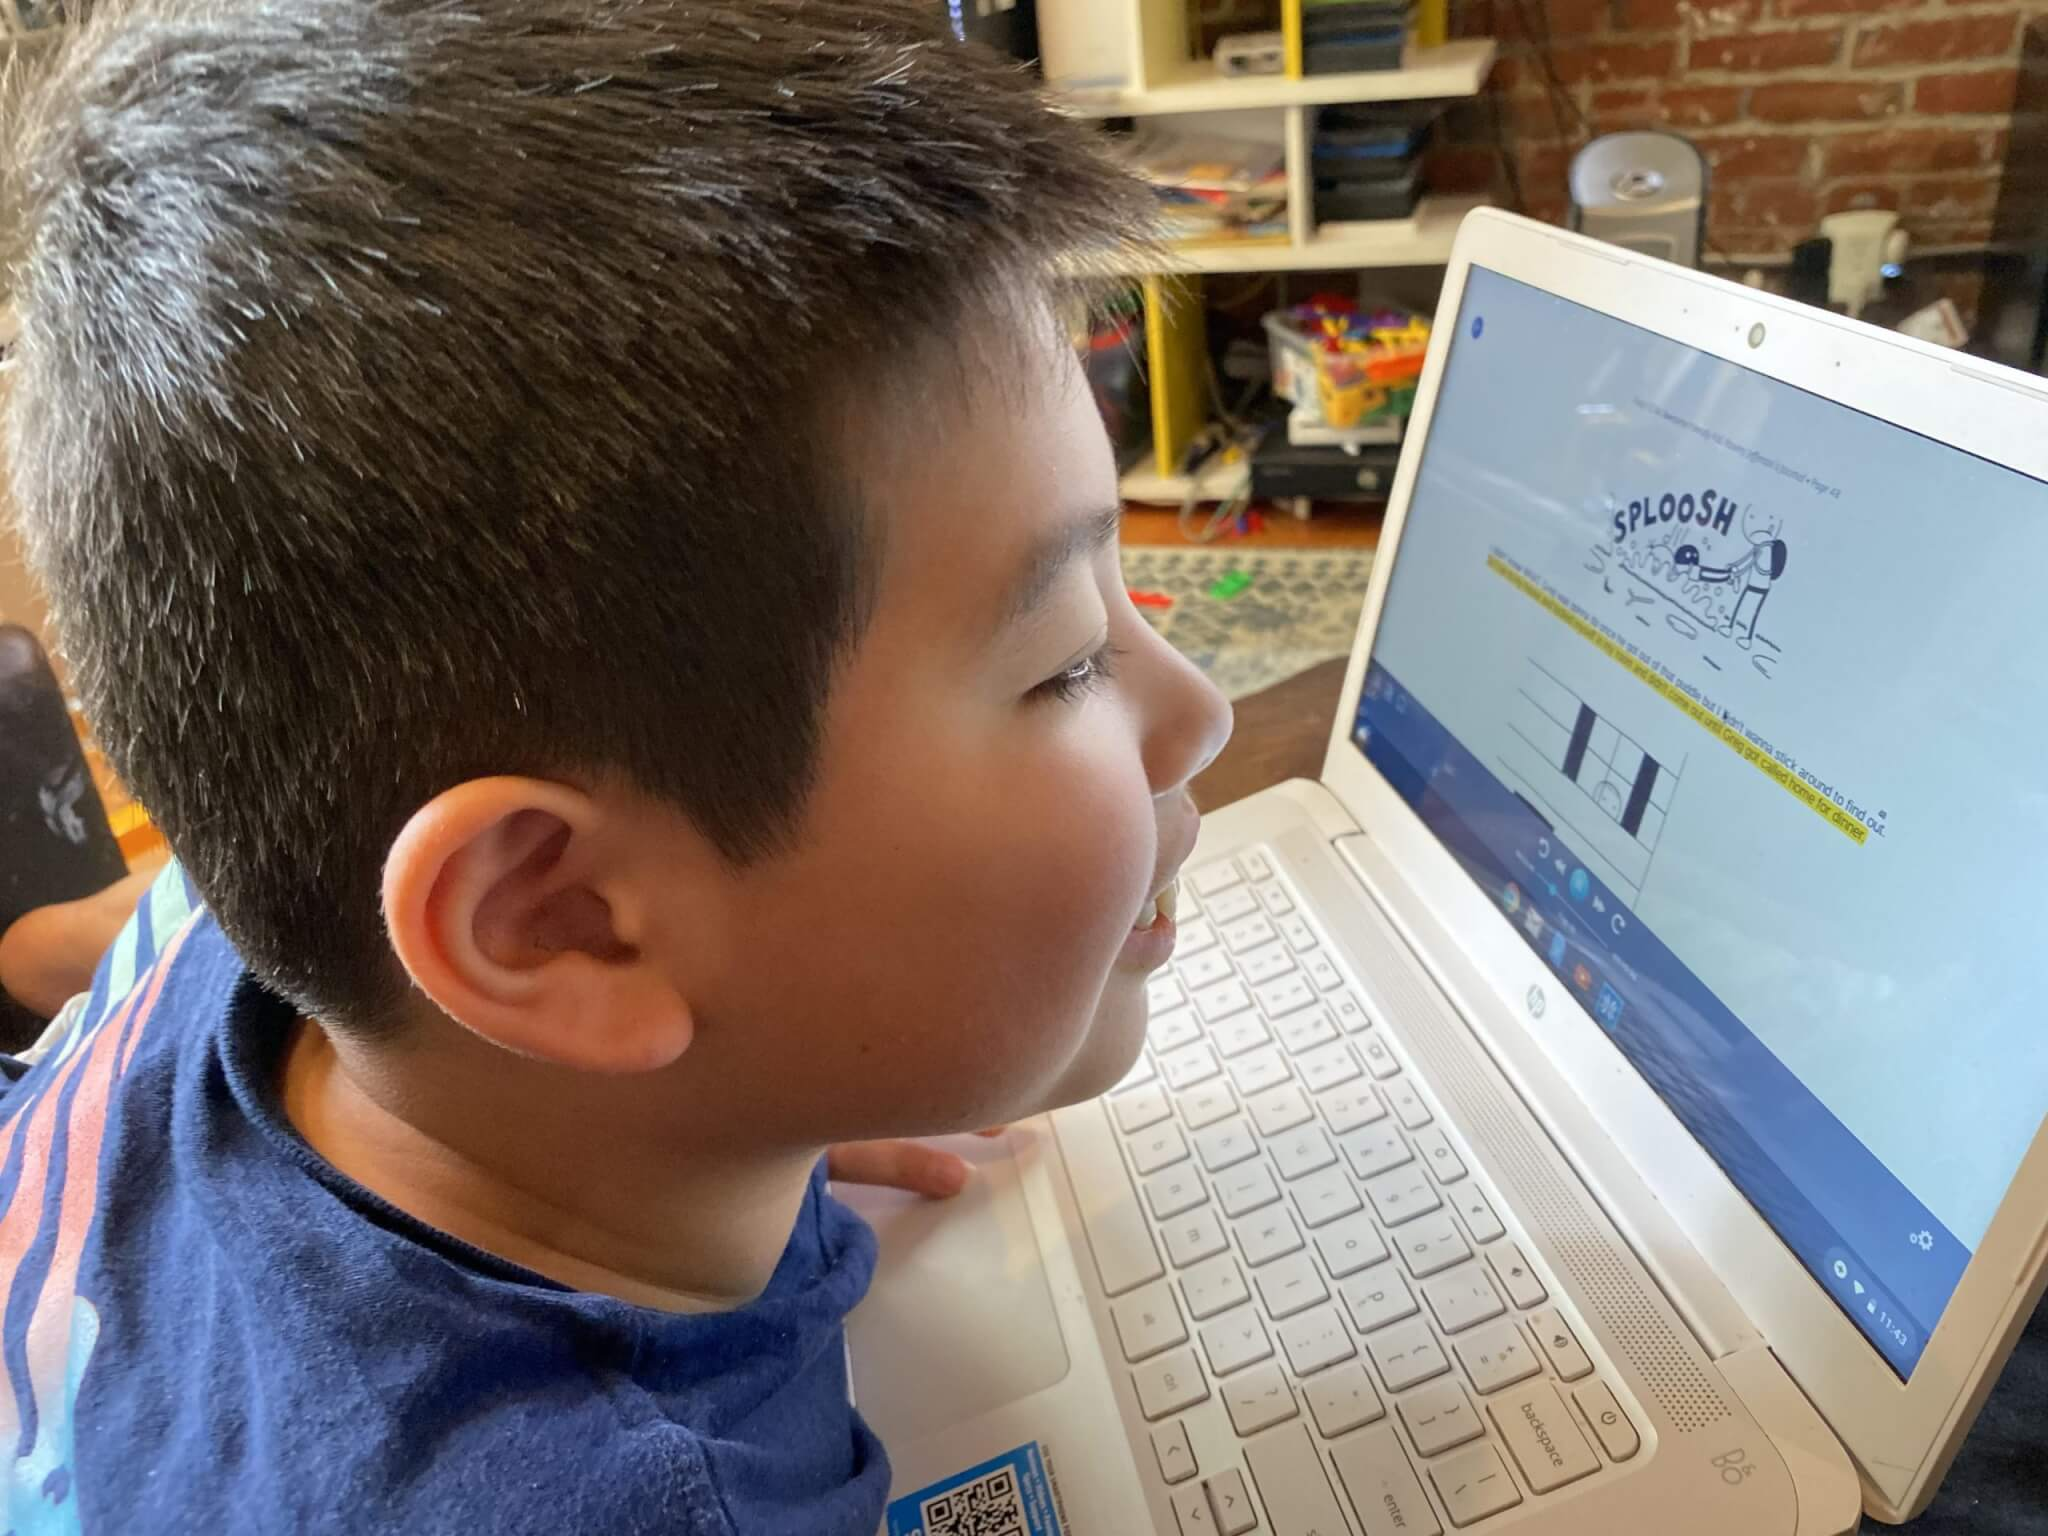 Anna Perng's 9-year-old son, Sam, who has autism, completes schoolwork using a website that offers speech-to-text assistance. Sam attends a New Jersey private school geared toward children with special needs. (Photo courtesy Anna Perng)